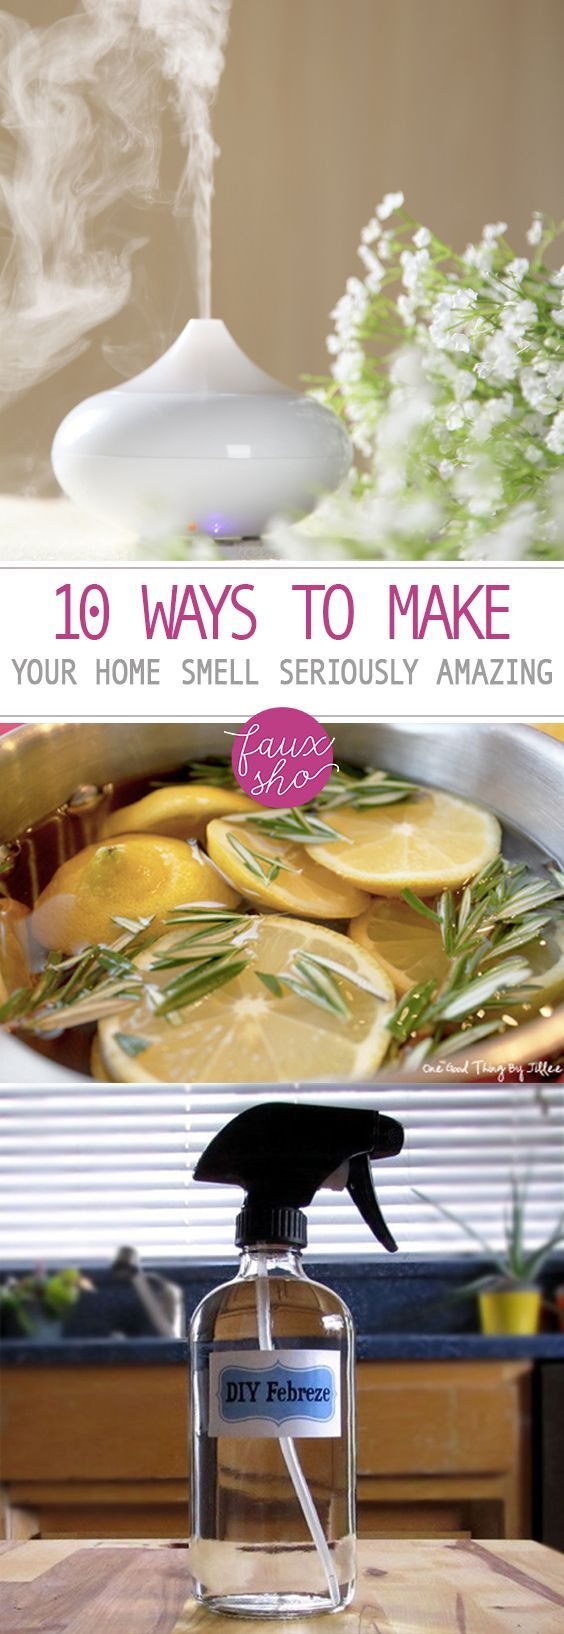 10 Ways to Make Your Home Smell Seriously Amazing|  #cleaning Tips, #diy #scents...